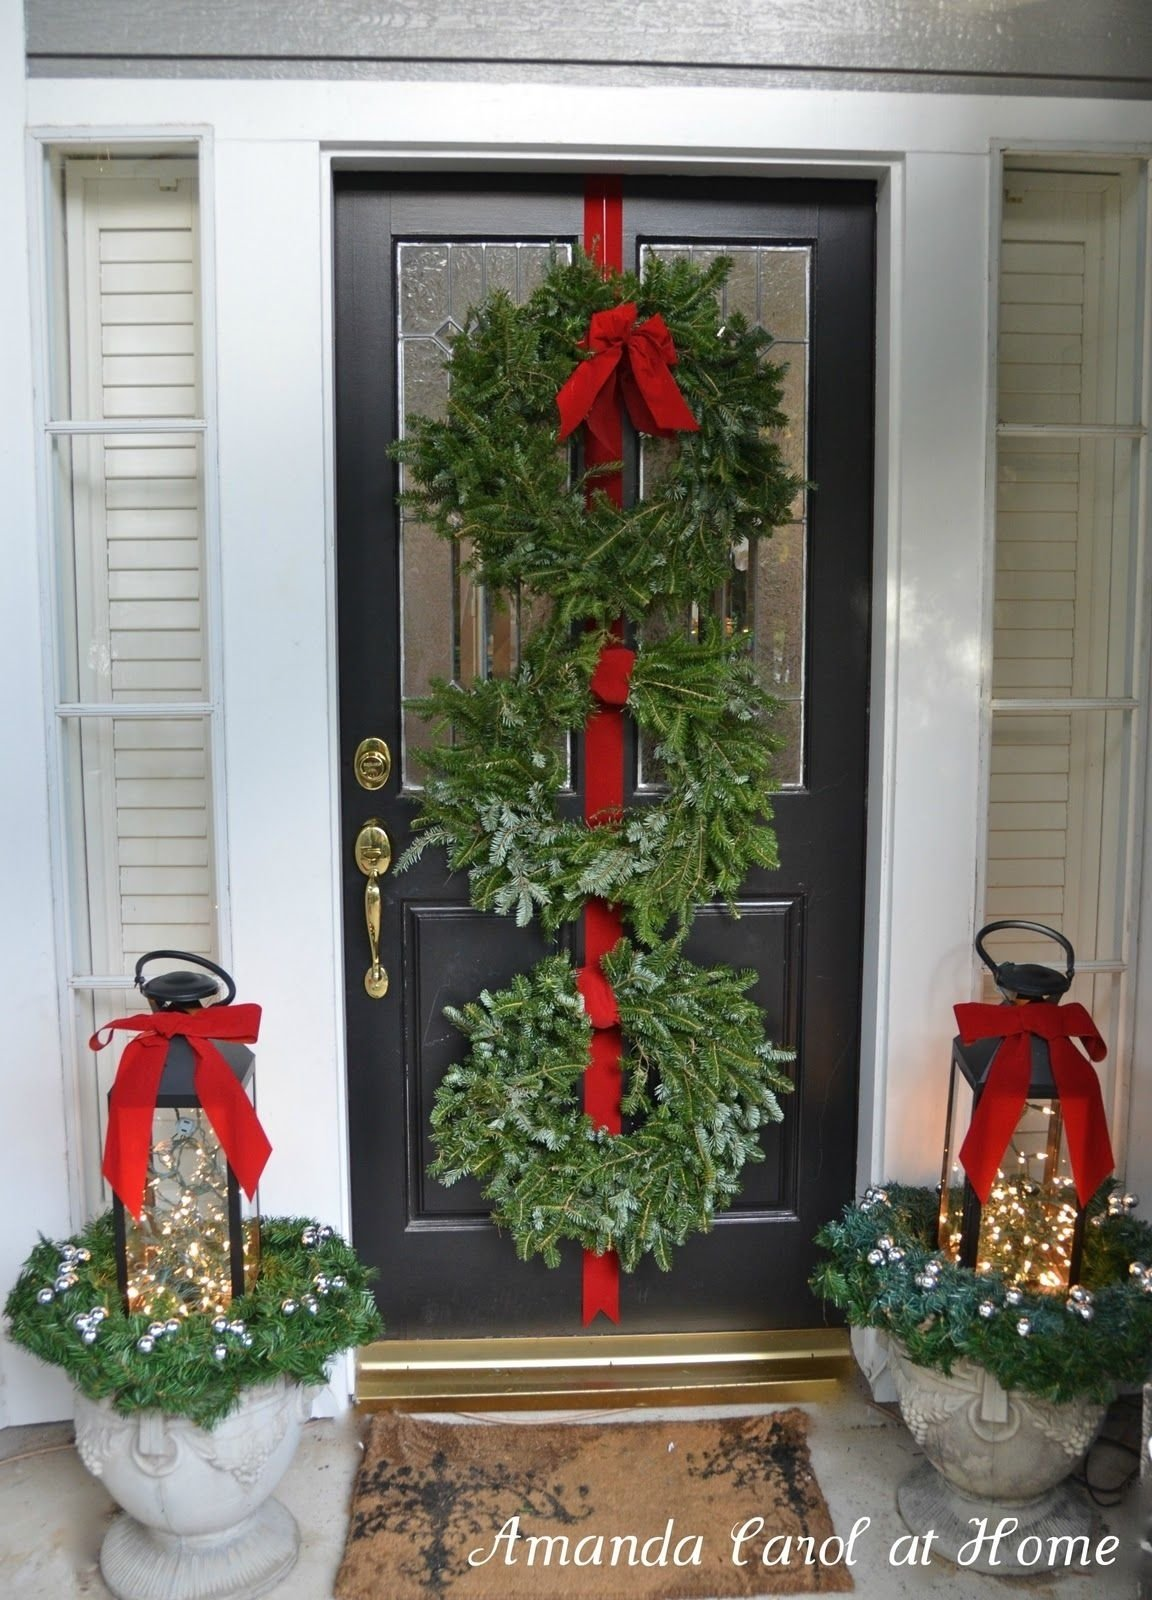 10 Nice Front Porch Christmas Decorating Ideas amazing front porch christmas decorating ideas marthastewartcom of 2020